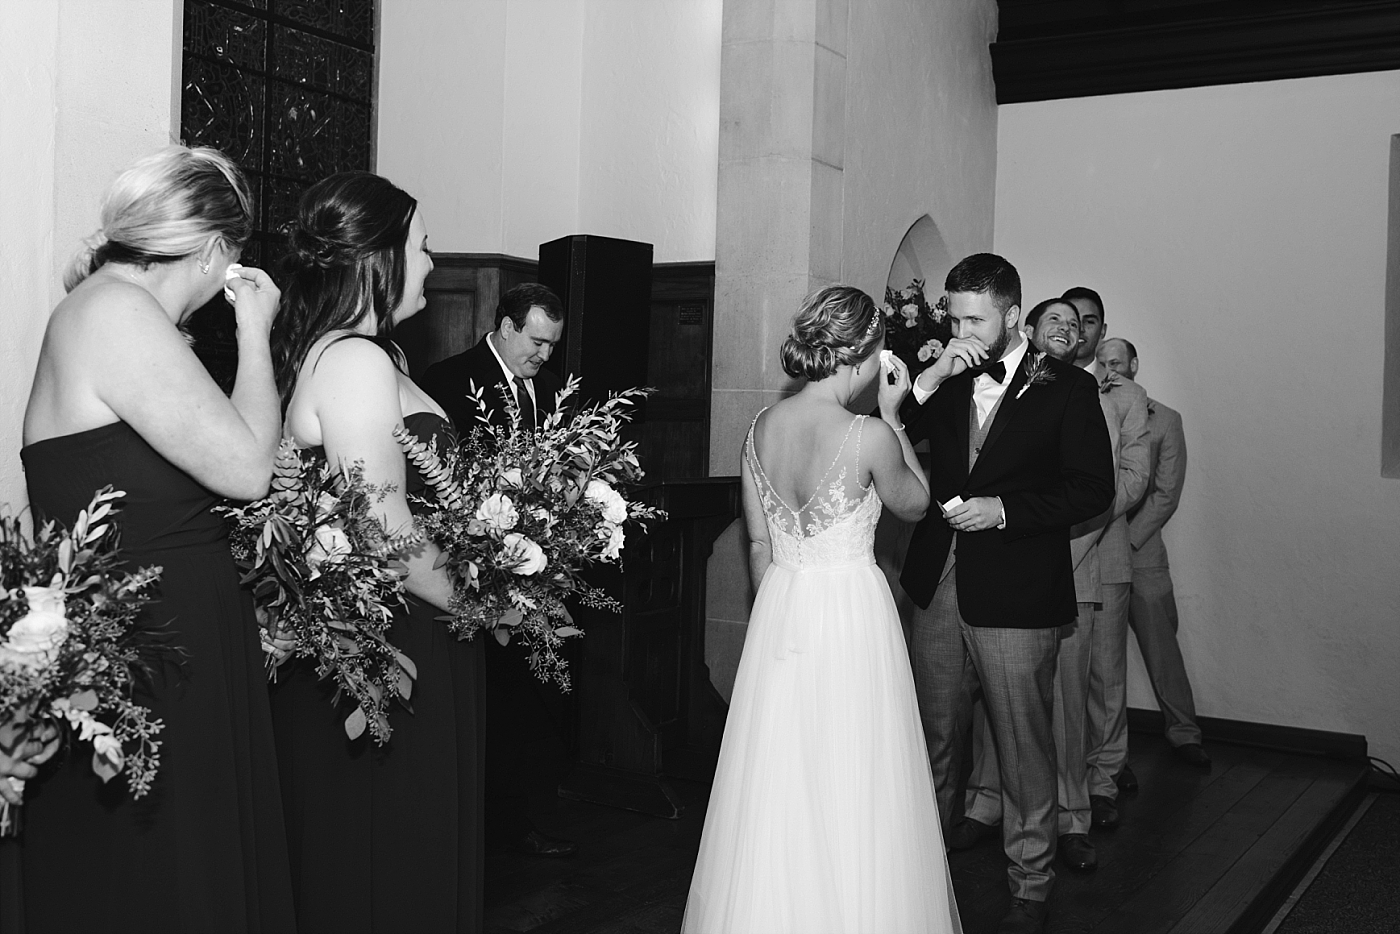 Bride groom bridal party gown vows alter church chapel photography wedding bridal